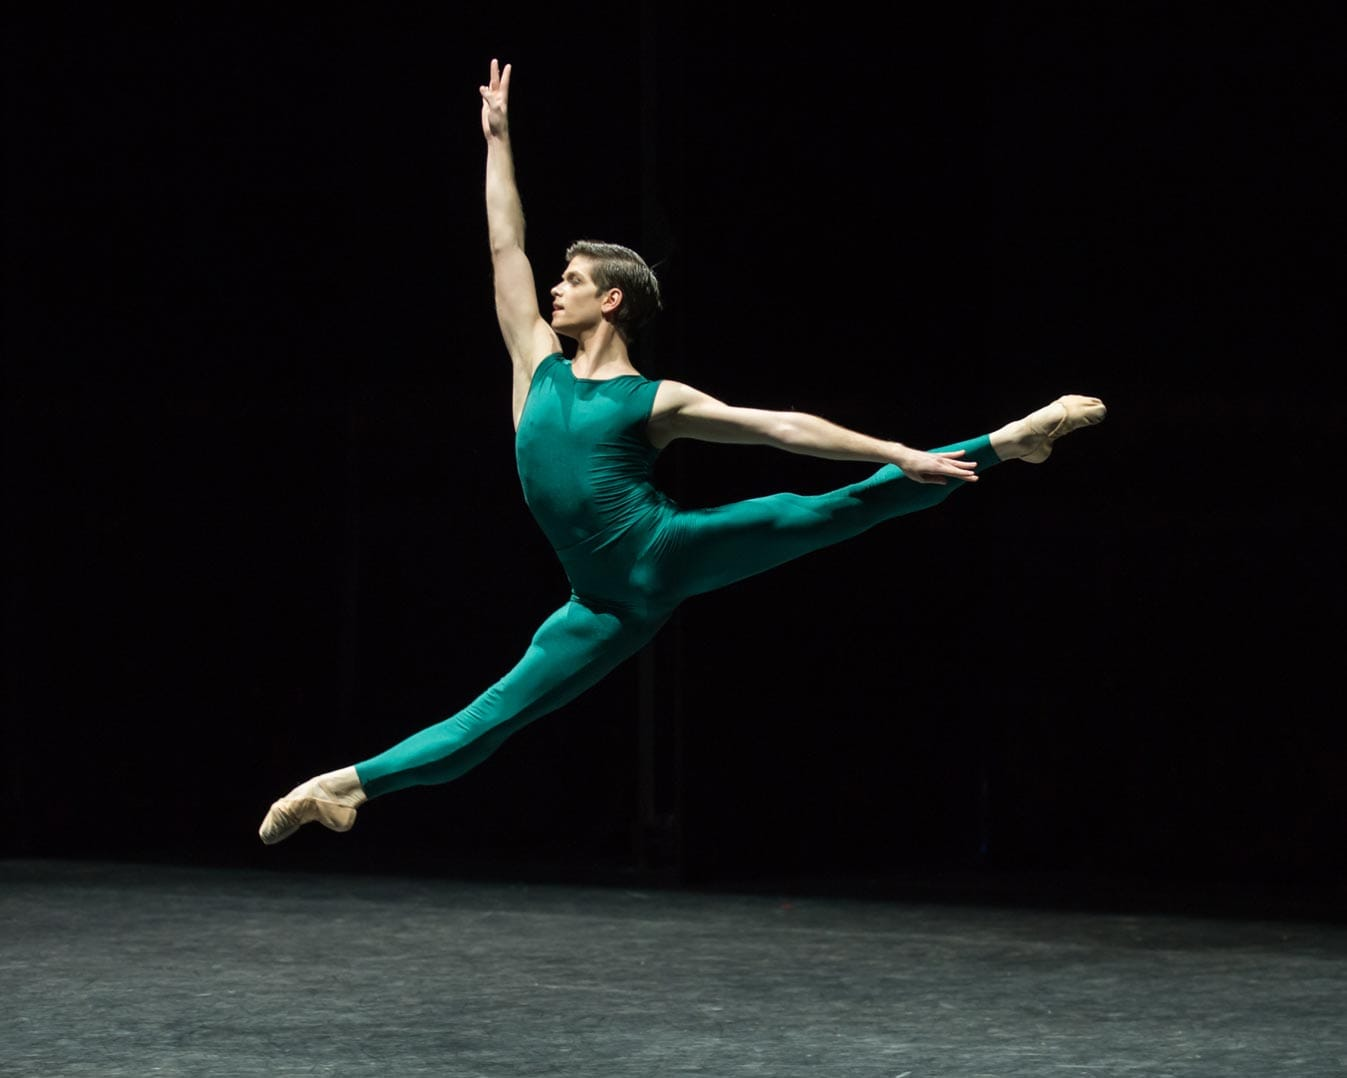 Barry-Drummond-in-In-the-Middle,-Somewhat-Elevated,-English-National-Ballet's-Modern-Masters-(C)-Photography-by-ASH